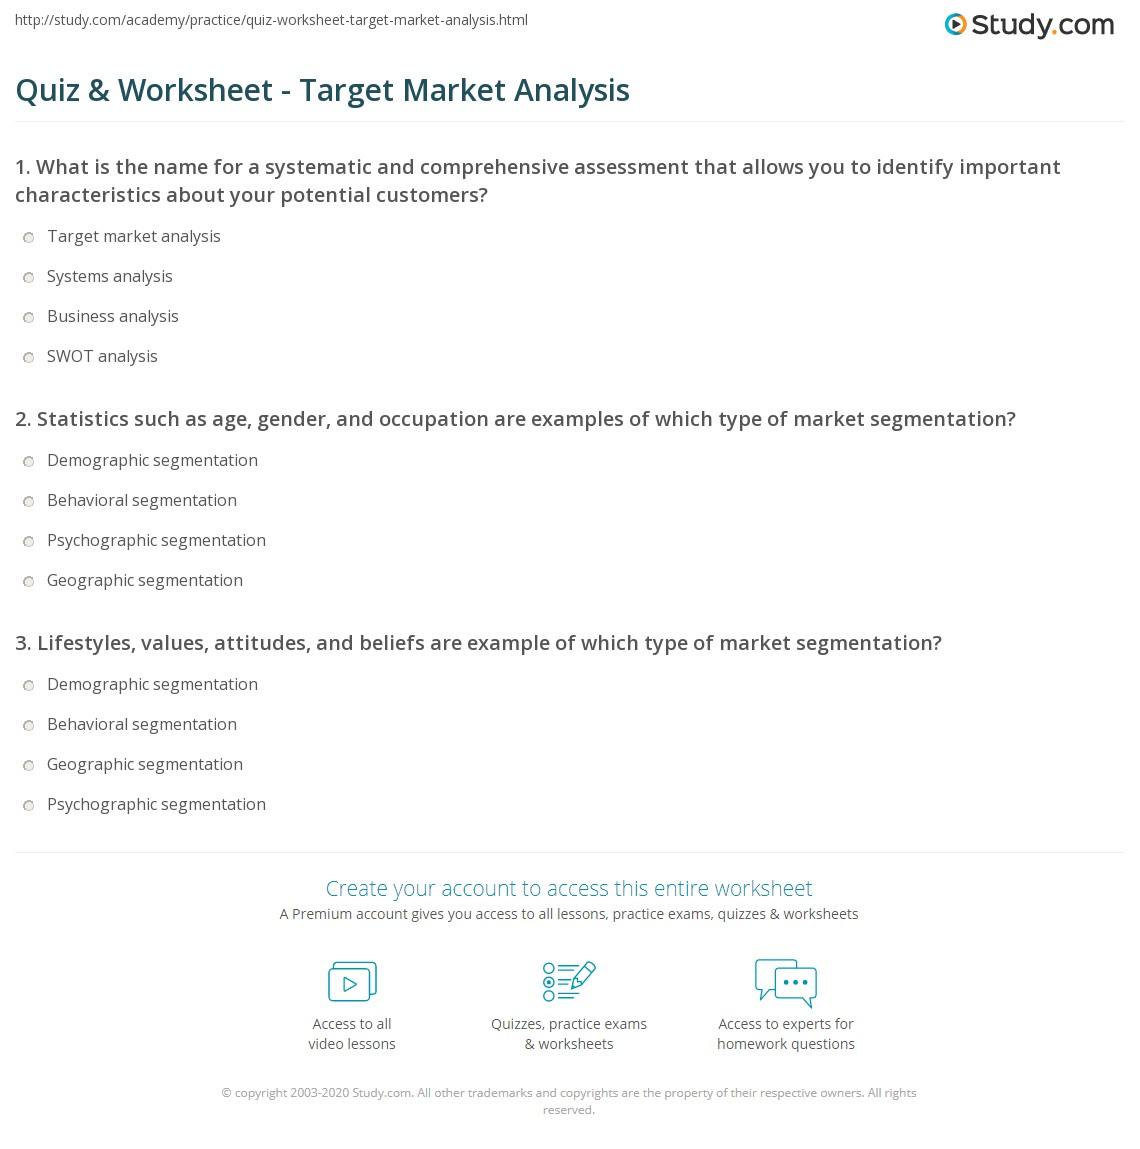 Quiz & Worksheet - Target Market Analysis | Study.com